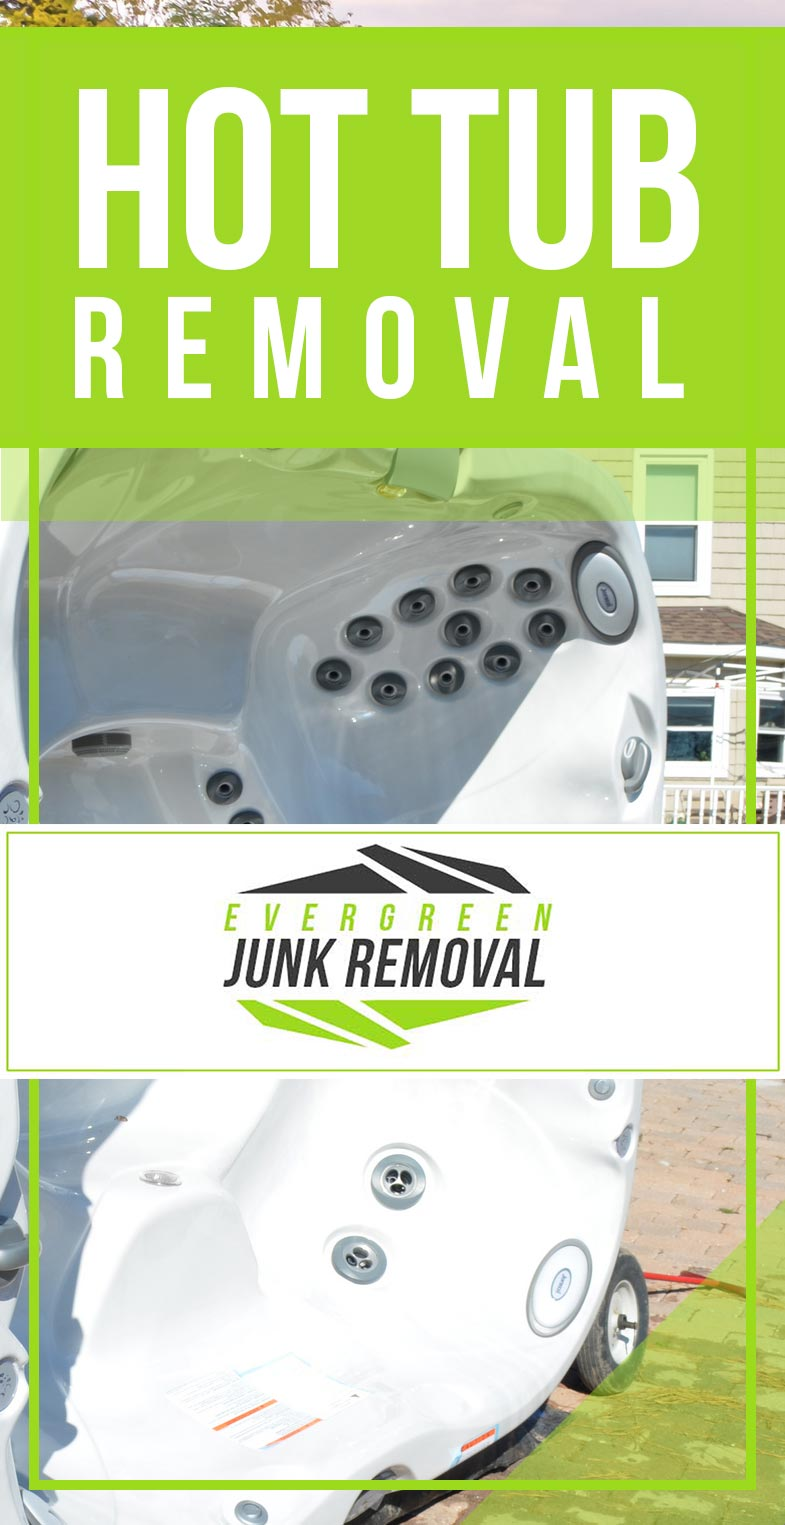 Orland Park Hot Tub Removal